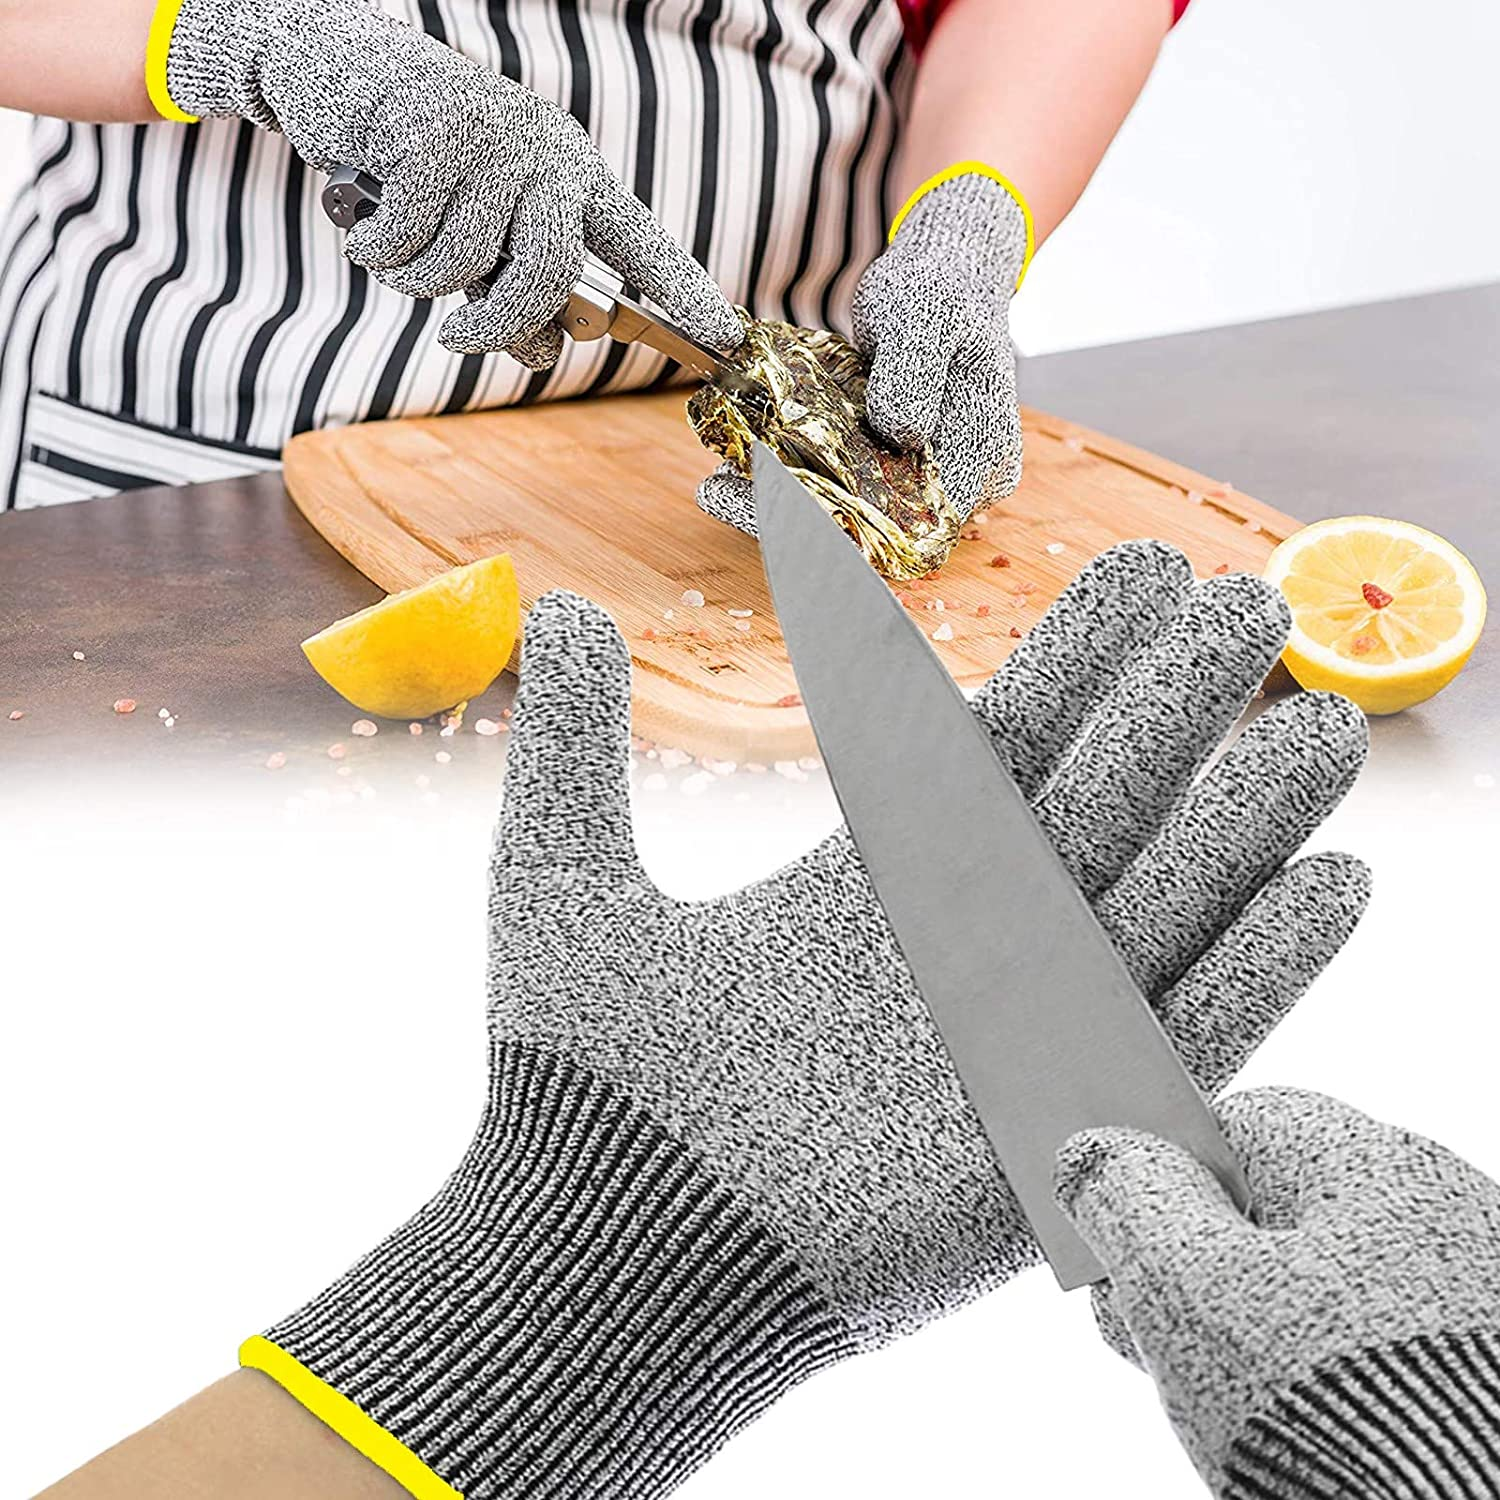 Cut Resistant Gloves Food Grade, Level 5 Protection Cut Proof Gloves, Work Kitchen Cutting Gloves for Oyster Shucking, 1 Pair